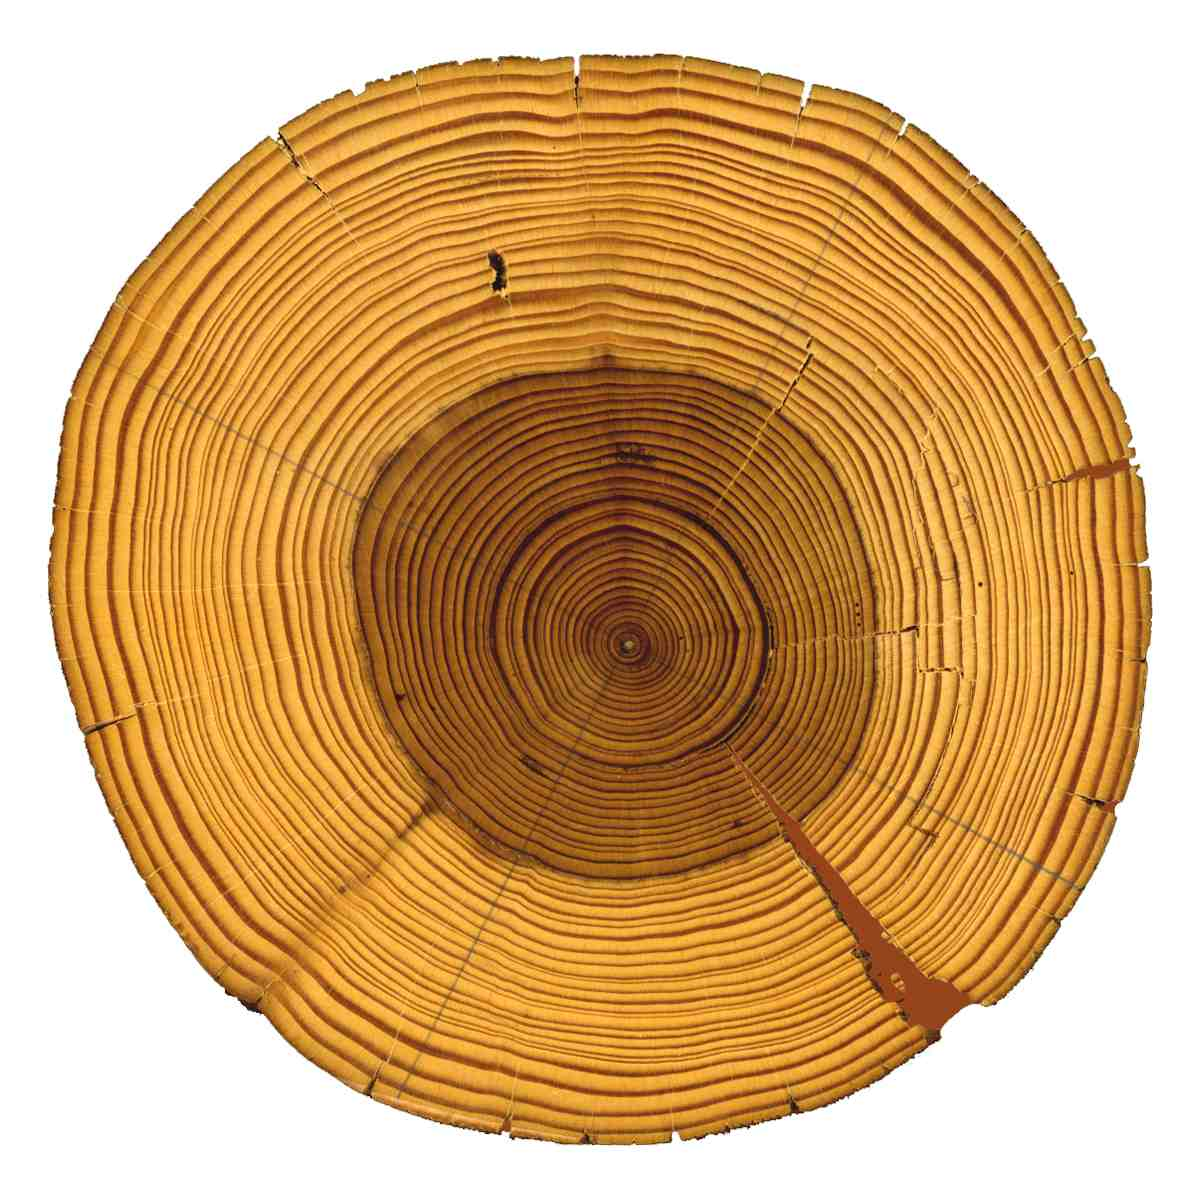 Tree ring dating and archaeology